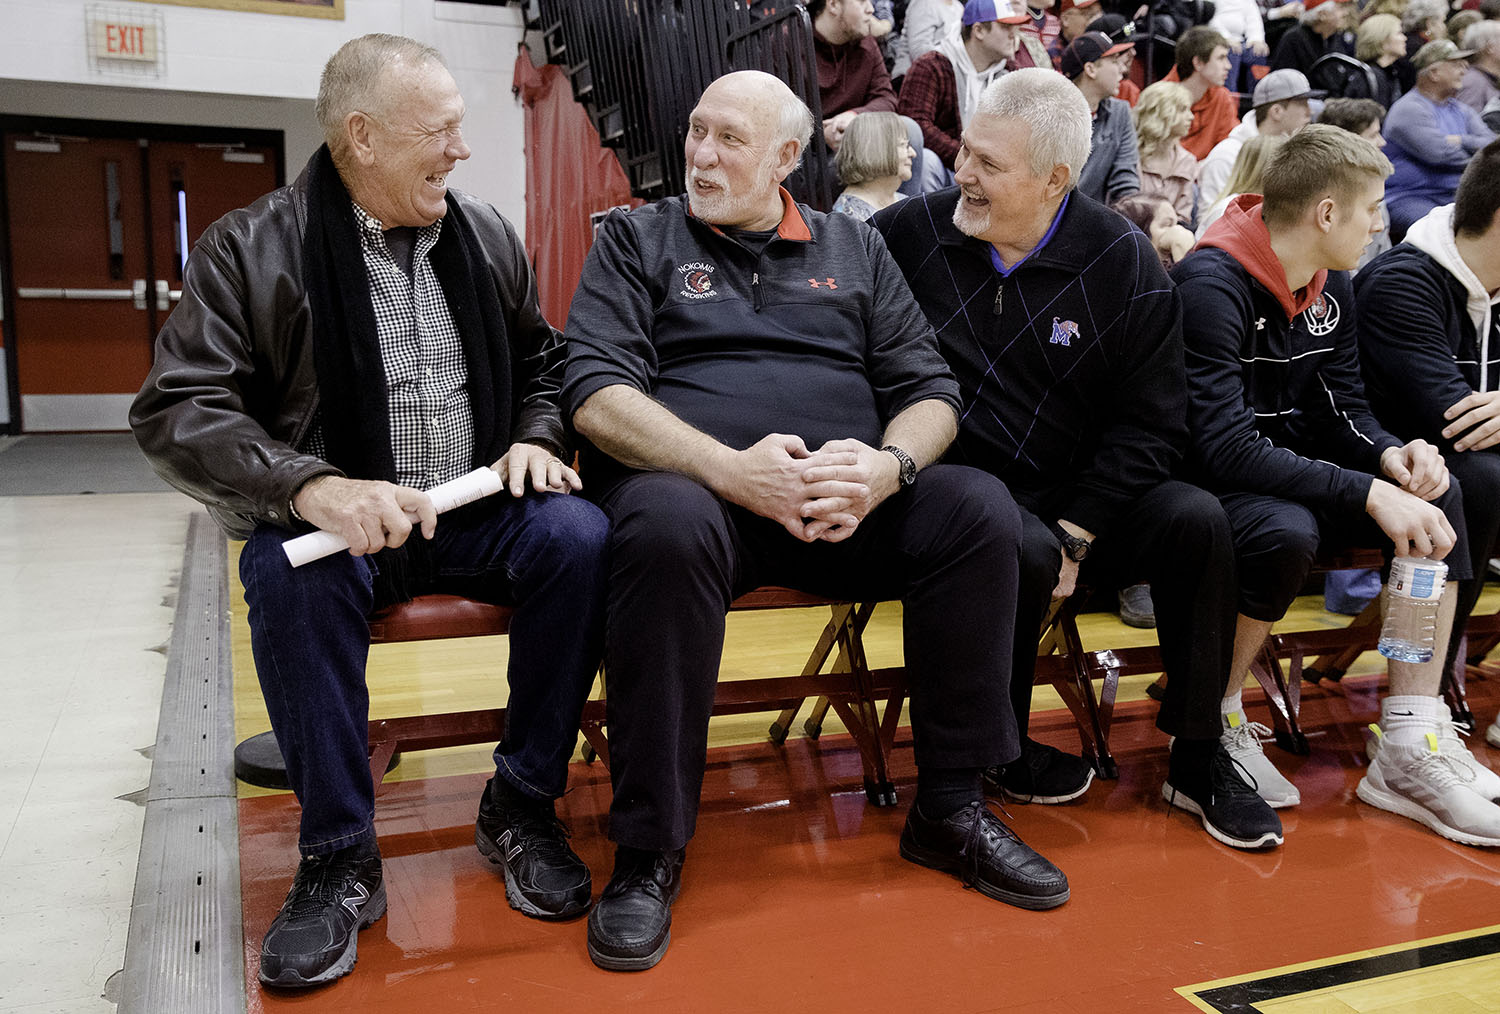 Loren Wallace, the former Nokomis head coach and Hall of Fame member, surprises his former player and current head coach Steve Kimbro as he sits down beside him at the start of the junior varsity game Saturday, Jan. 26, 2019. John Flowers, Kimbro's former teammate, is at right. [Ted Schurter/The State Journal-Register]